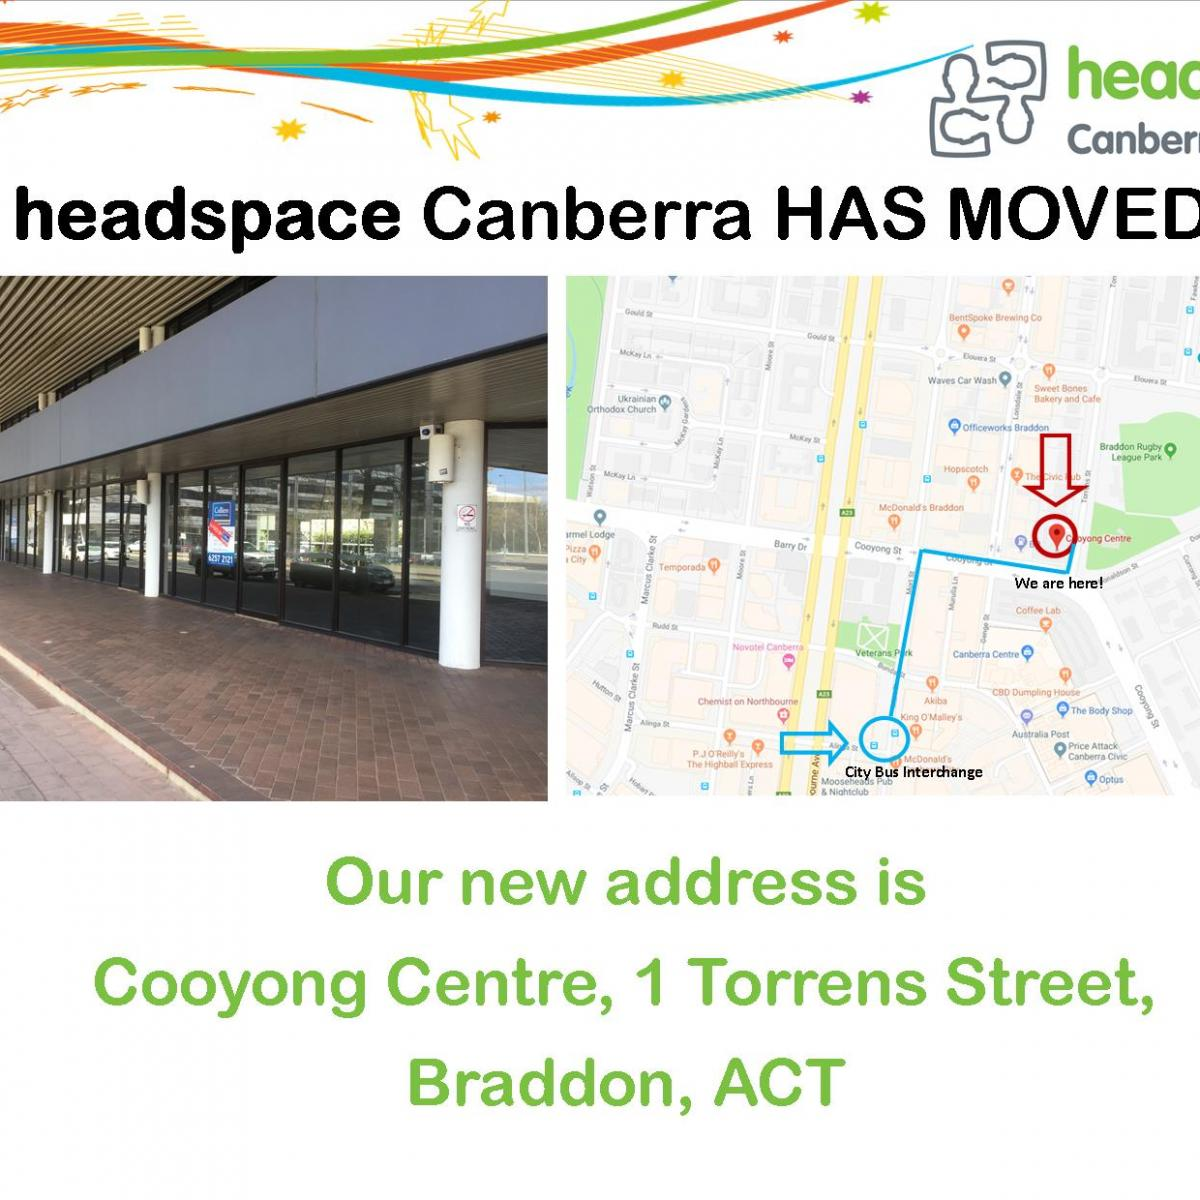 Canberra Centre Parking Headspace Canberra Youth Mental Health Centre Services Headspace